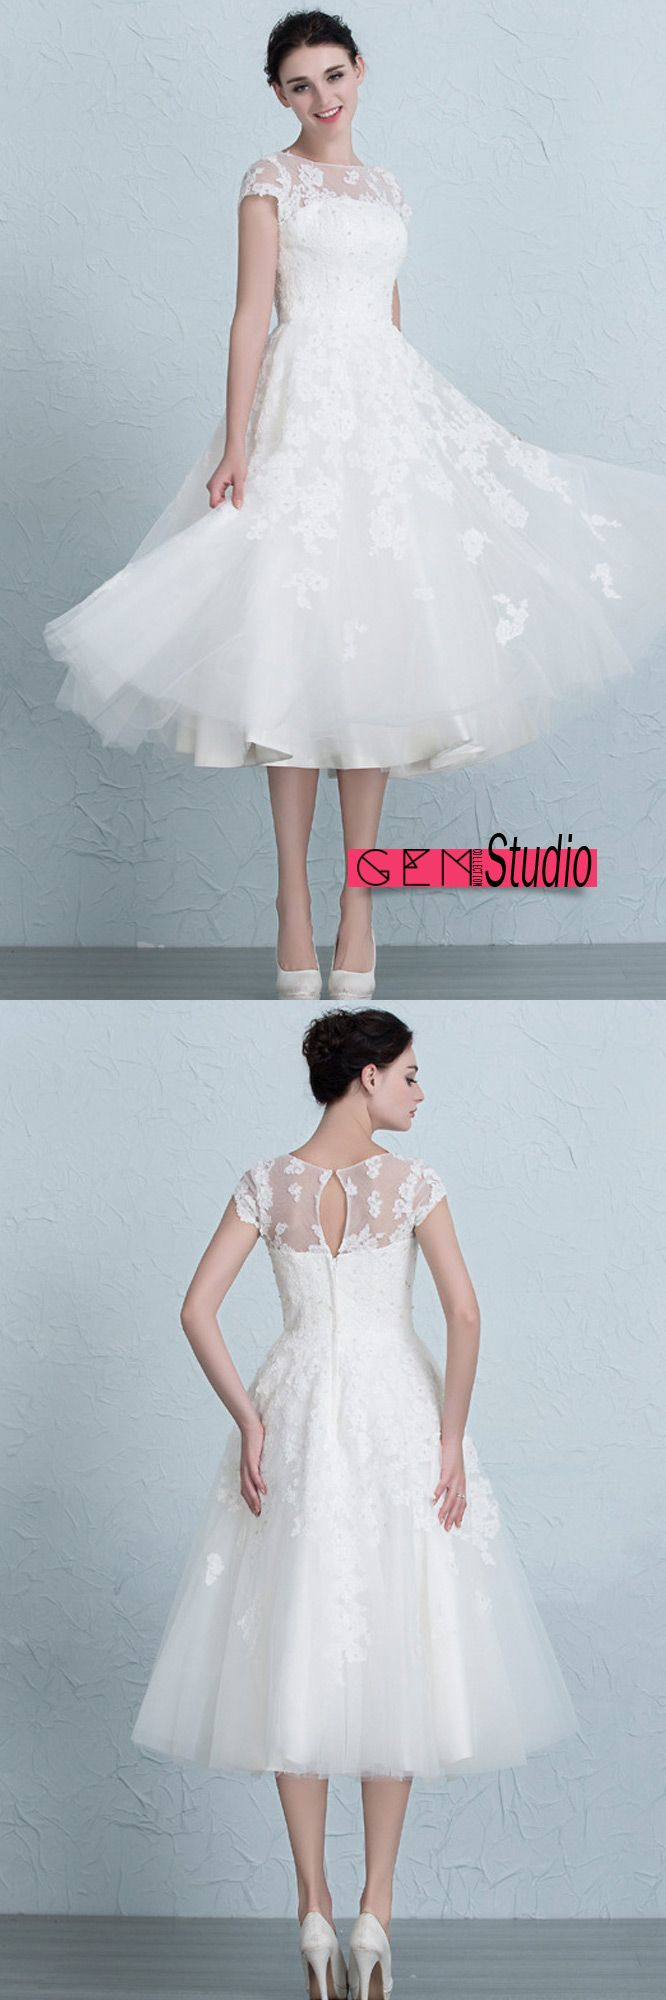 687 best Sweet & Short Wedding Dress images on Pinterest